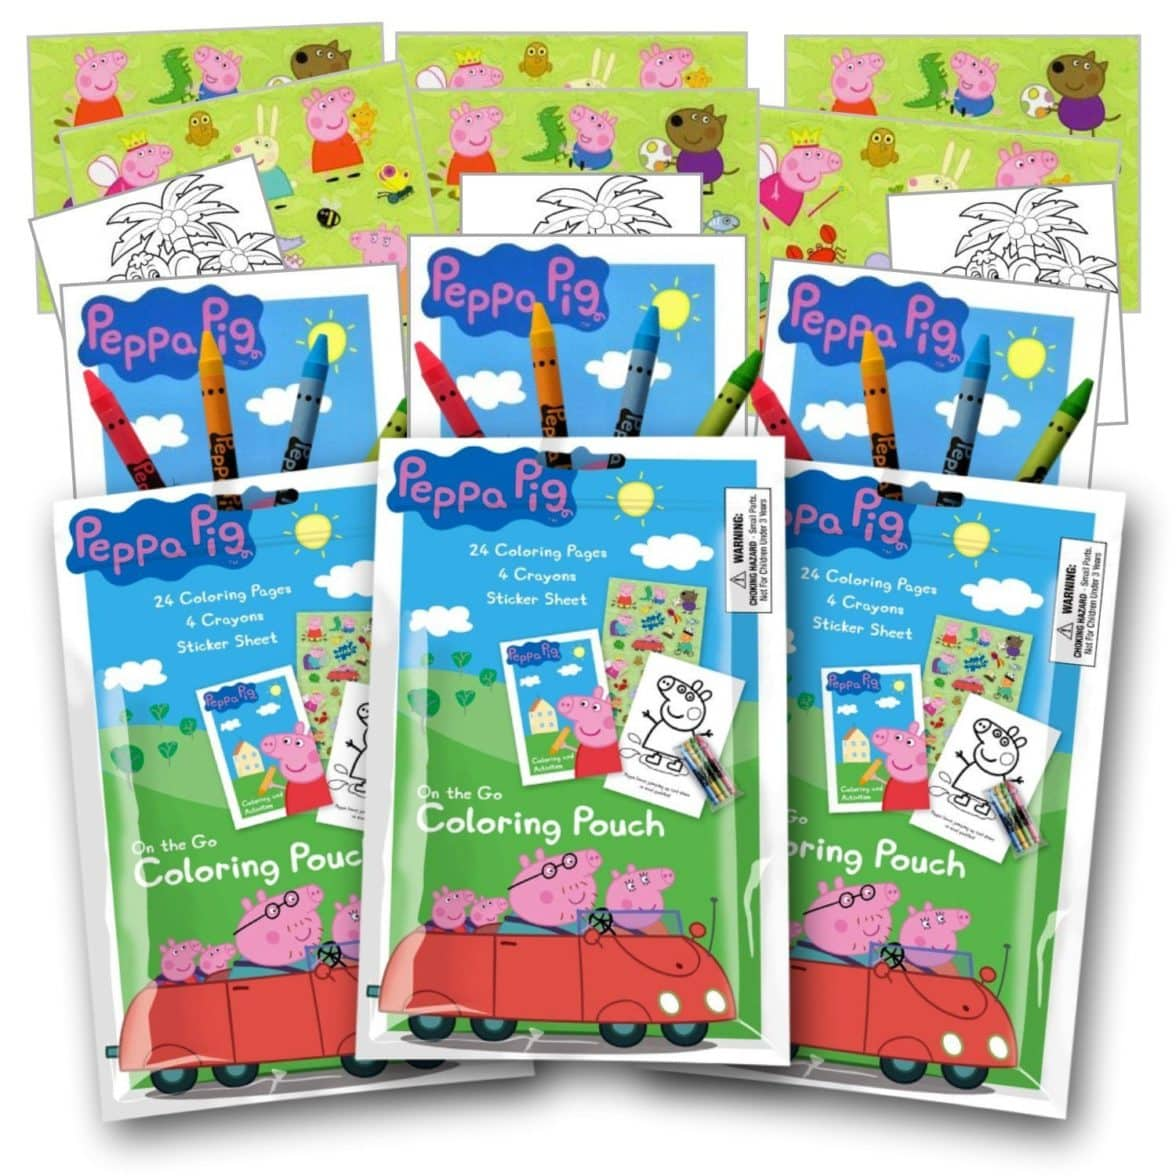 Peppa Pig Coloring Pack Party Favors with Stickers, Crayons and Coloring Activity Book in a Resealable Pouch ~ Plus Separately Licensed 3X3 Inch Coloring Fun Stickers Included